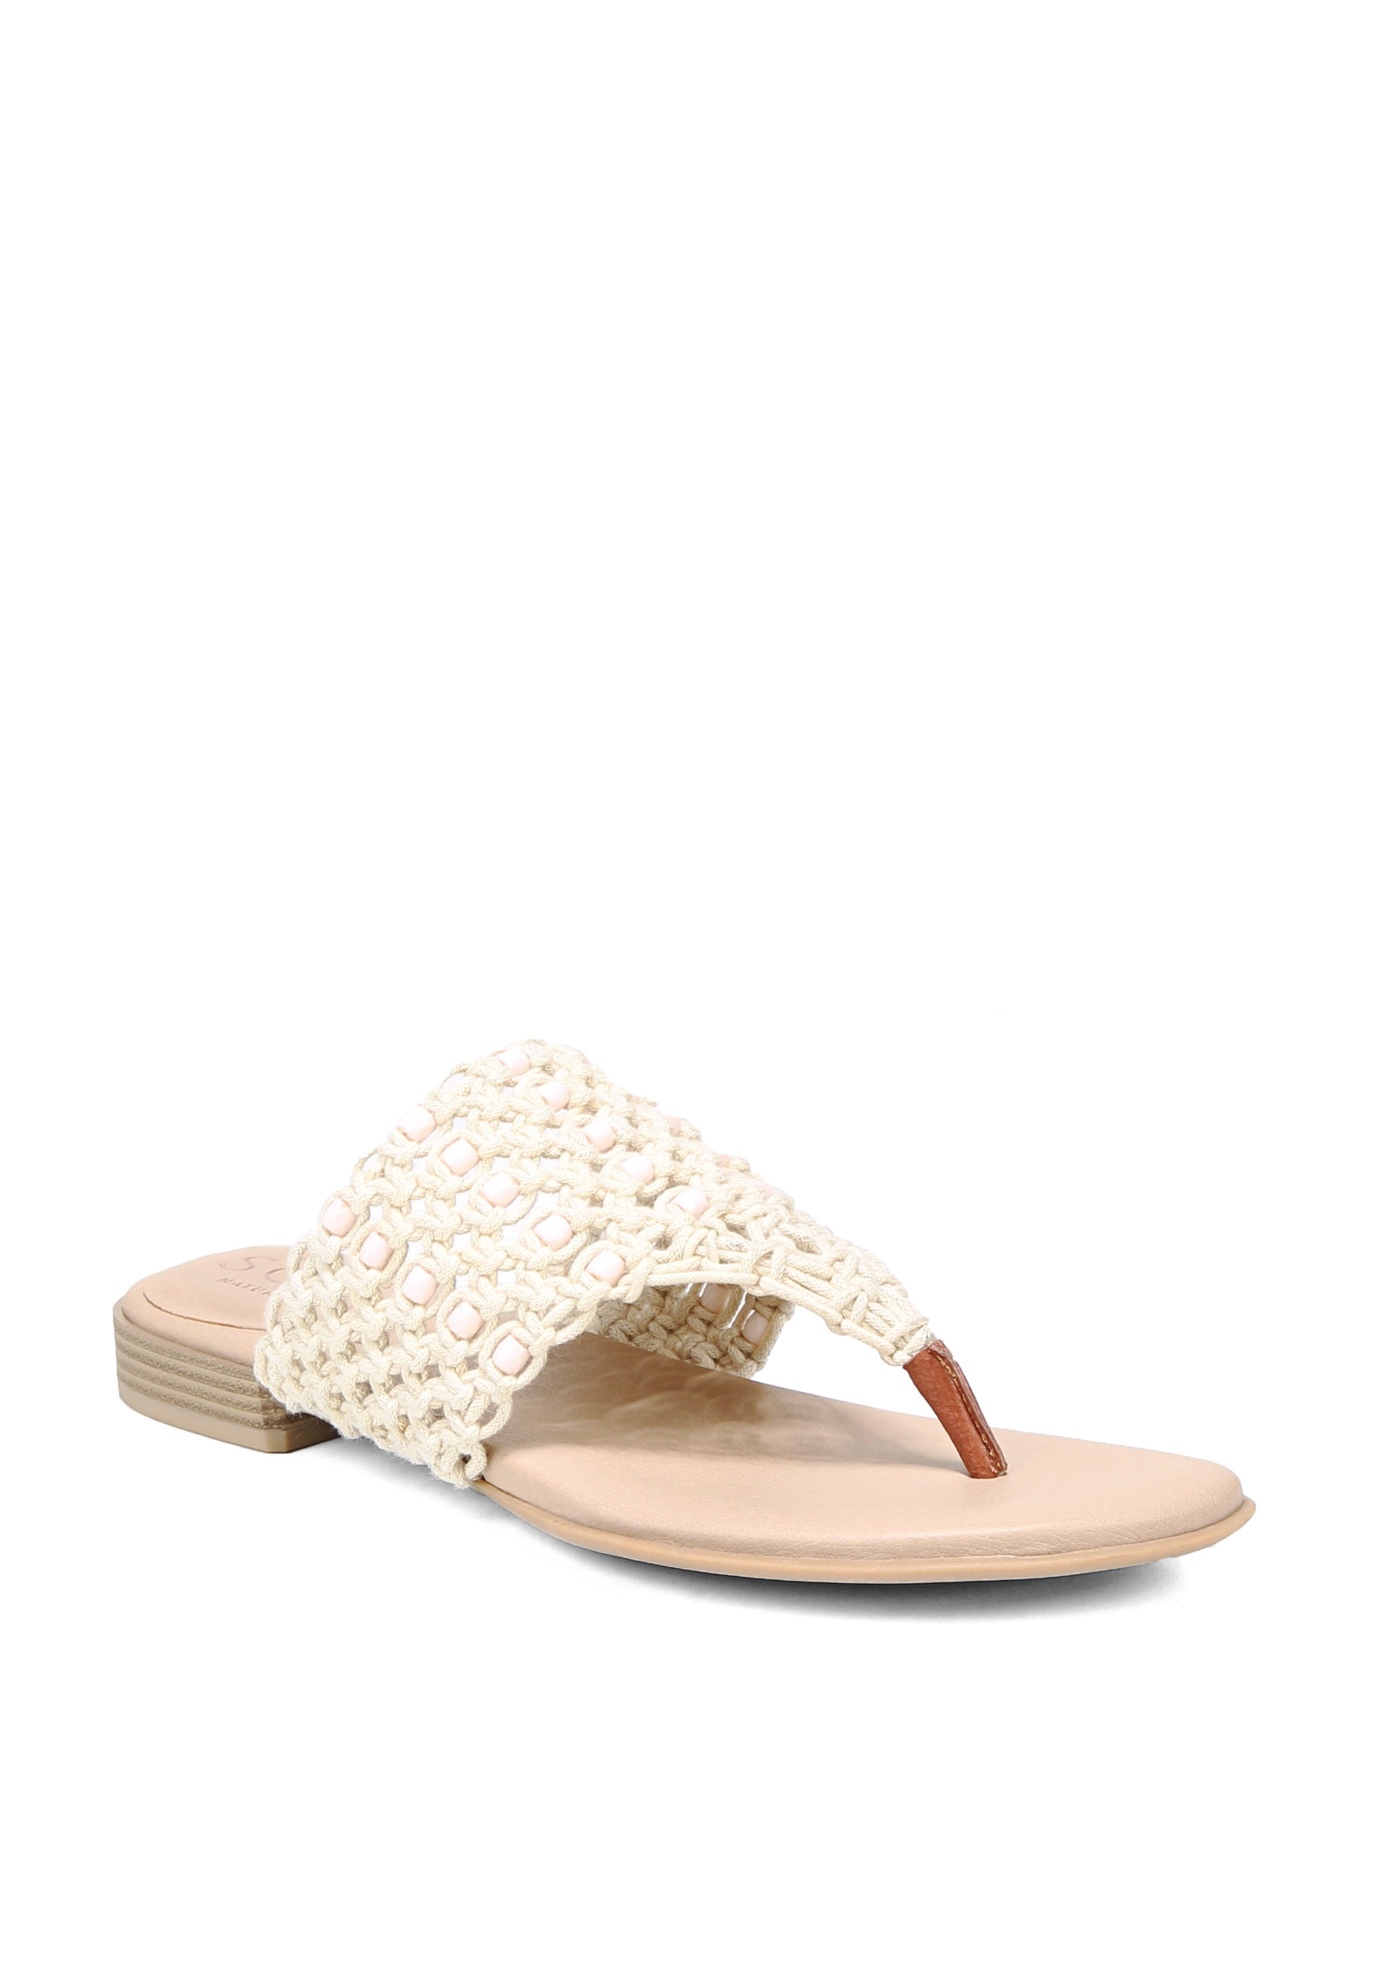 Rascally Sandal by SOUL Naturalizer,